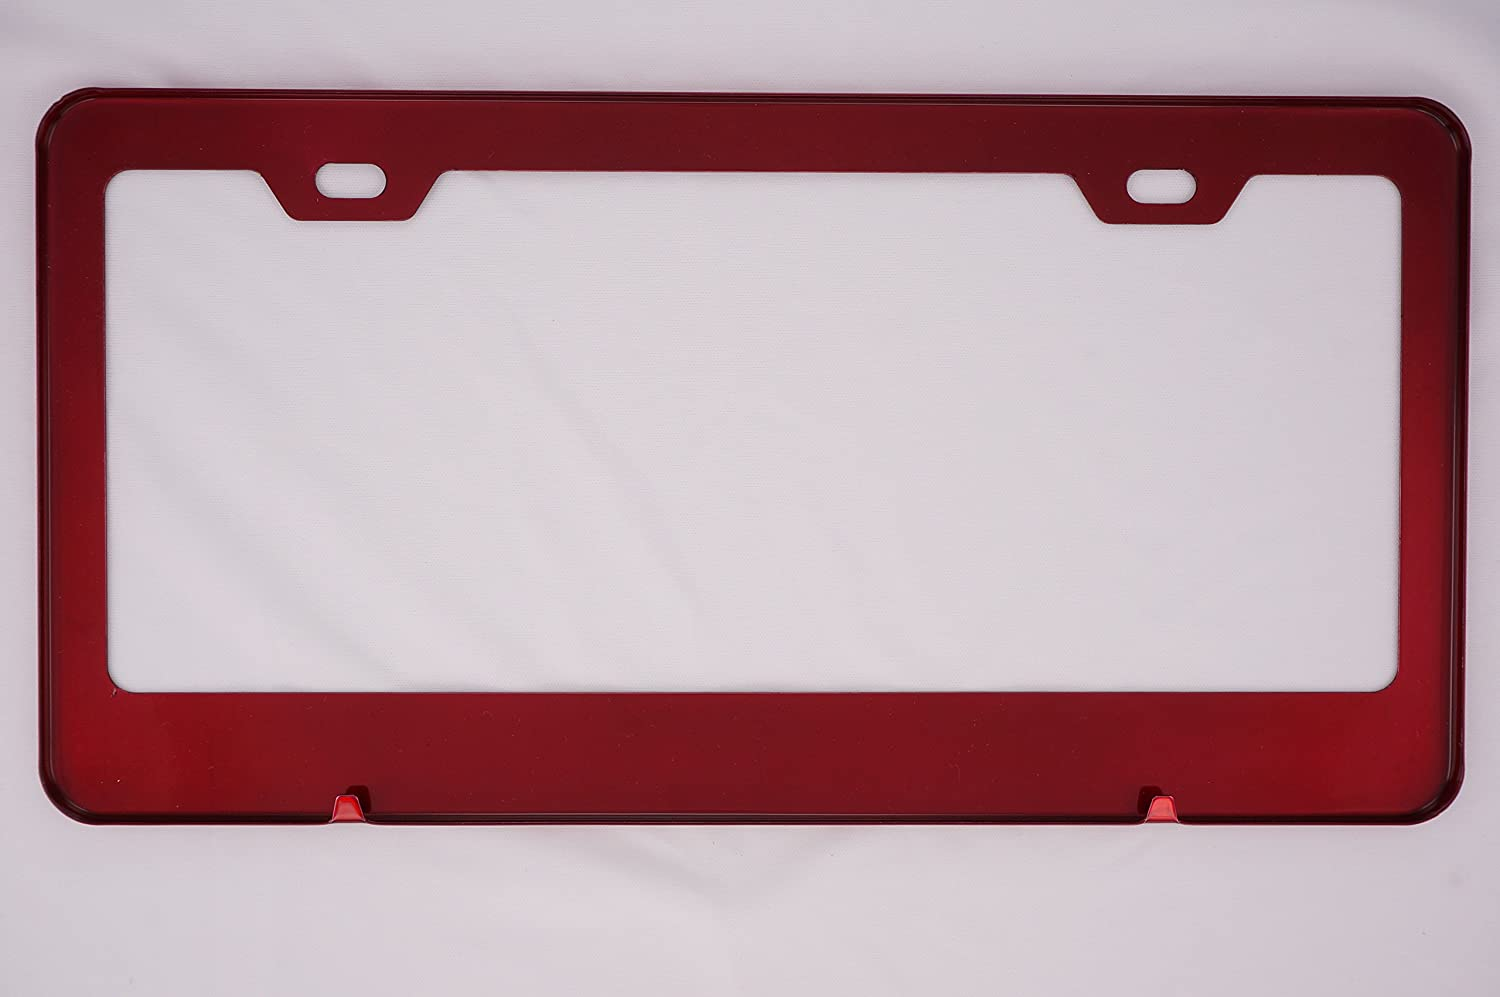 Powder Coasted Color Fit Ferrari Red Stainless Steel License Plate Frame